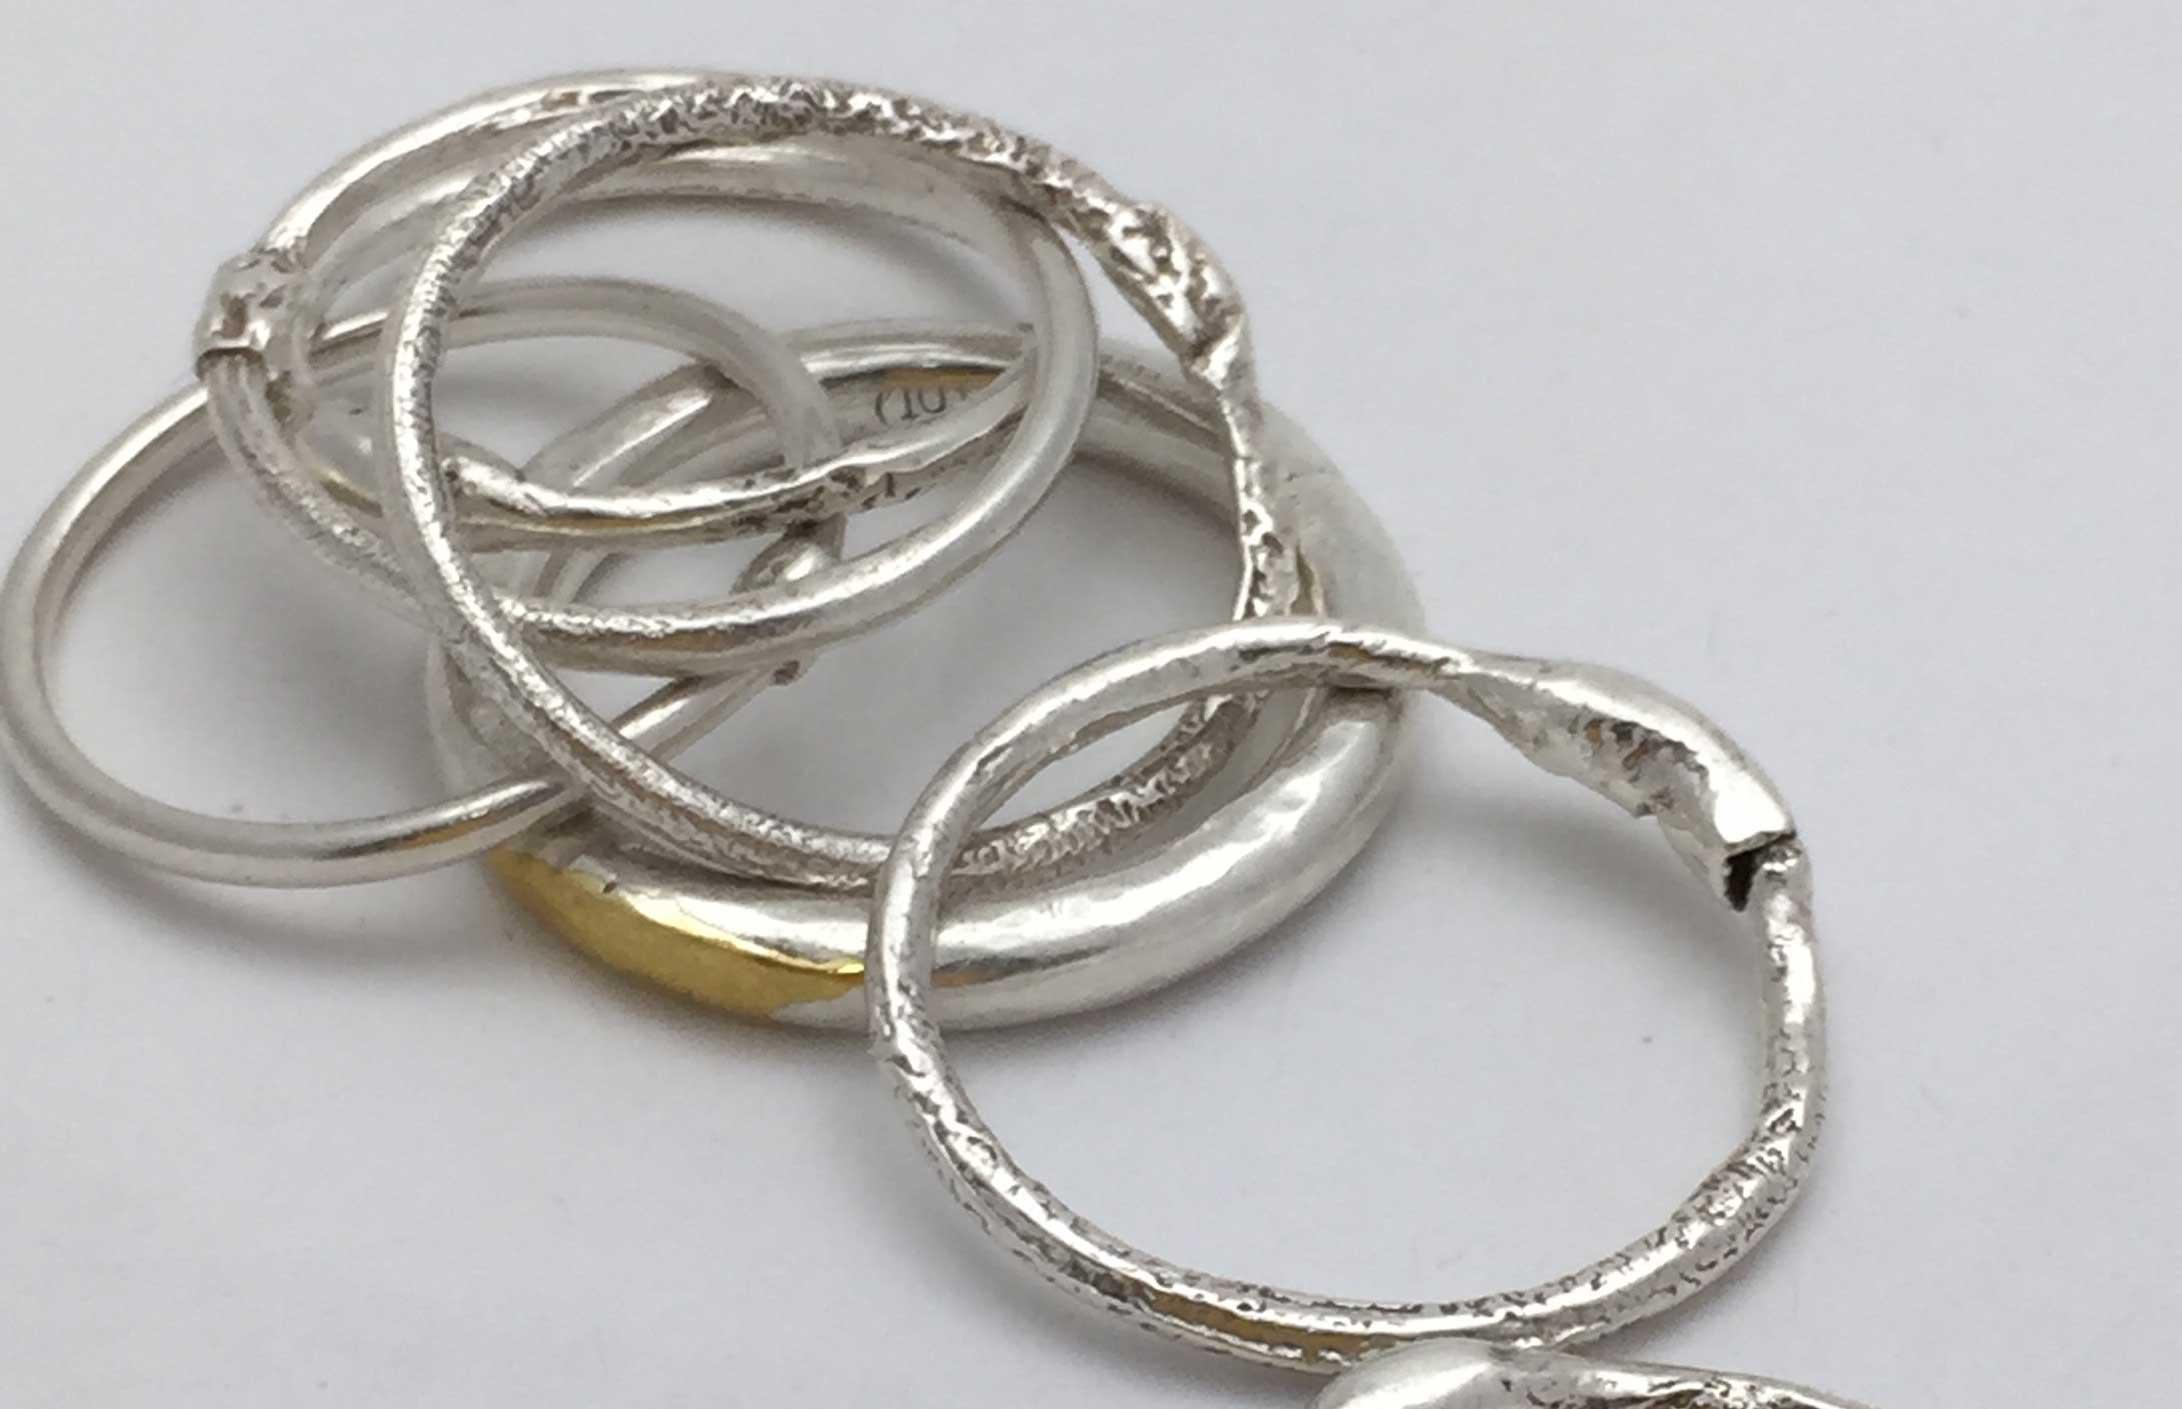 Fused silver and gold stackable rings made by Brenda Factor